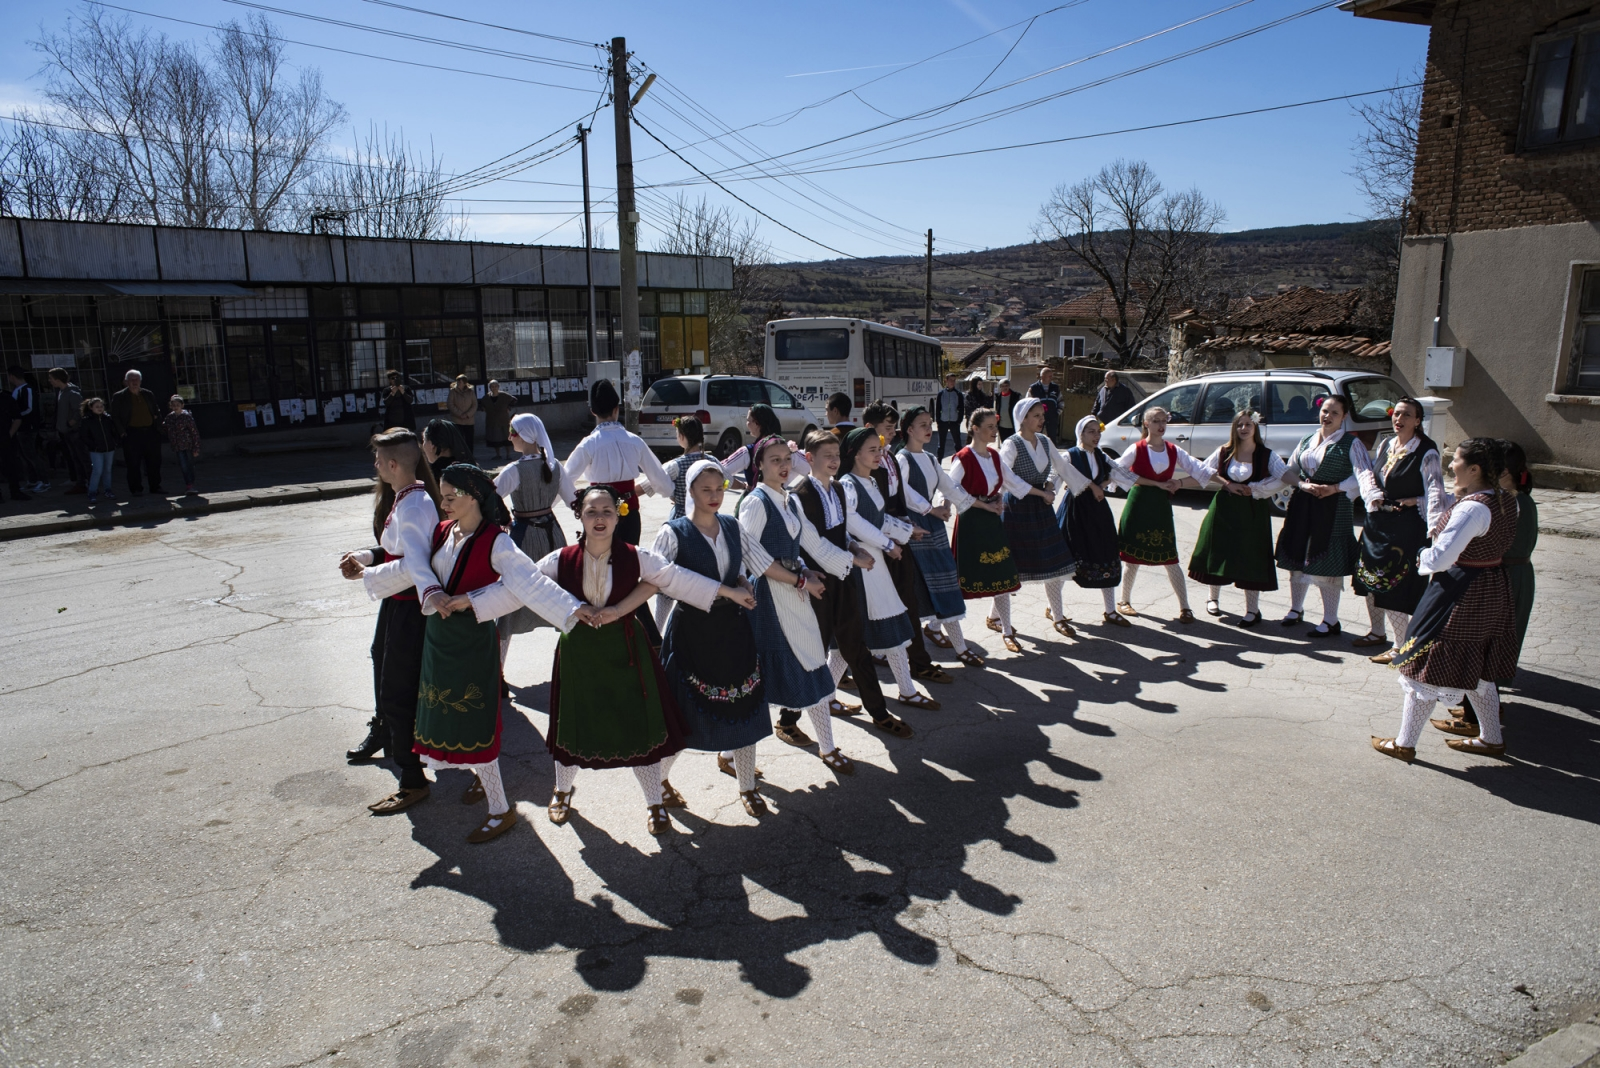 The Popintsi dance troop performs the horo before descending to the village square for the Sirnitsa celebrations in preparation for Lenten fasting. The village will nearly double in size, with people traveling from cities to visit aging relatives and participate in the festivities.